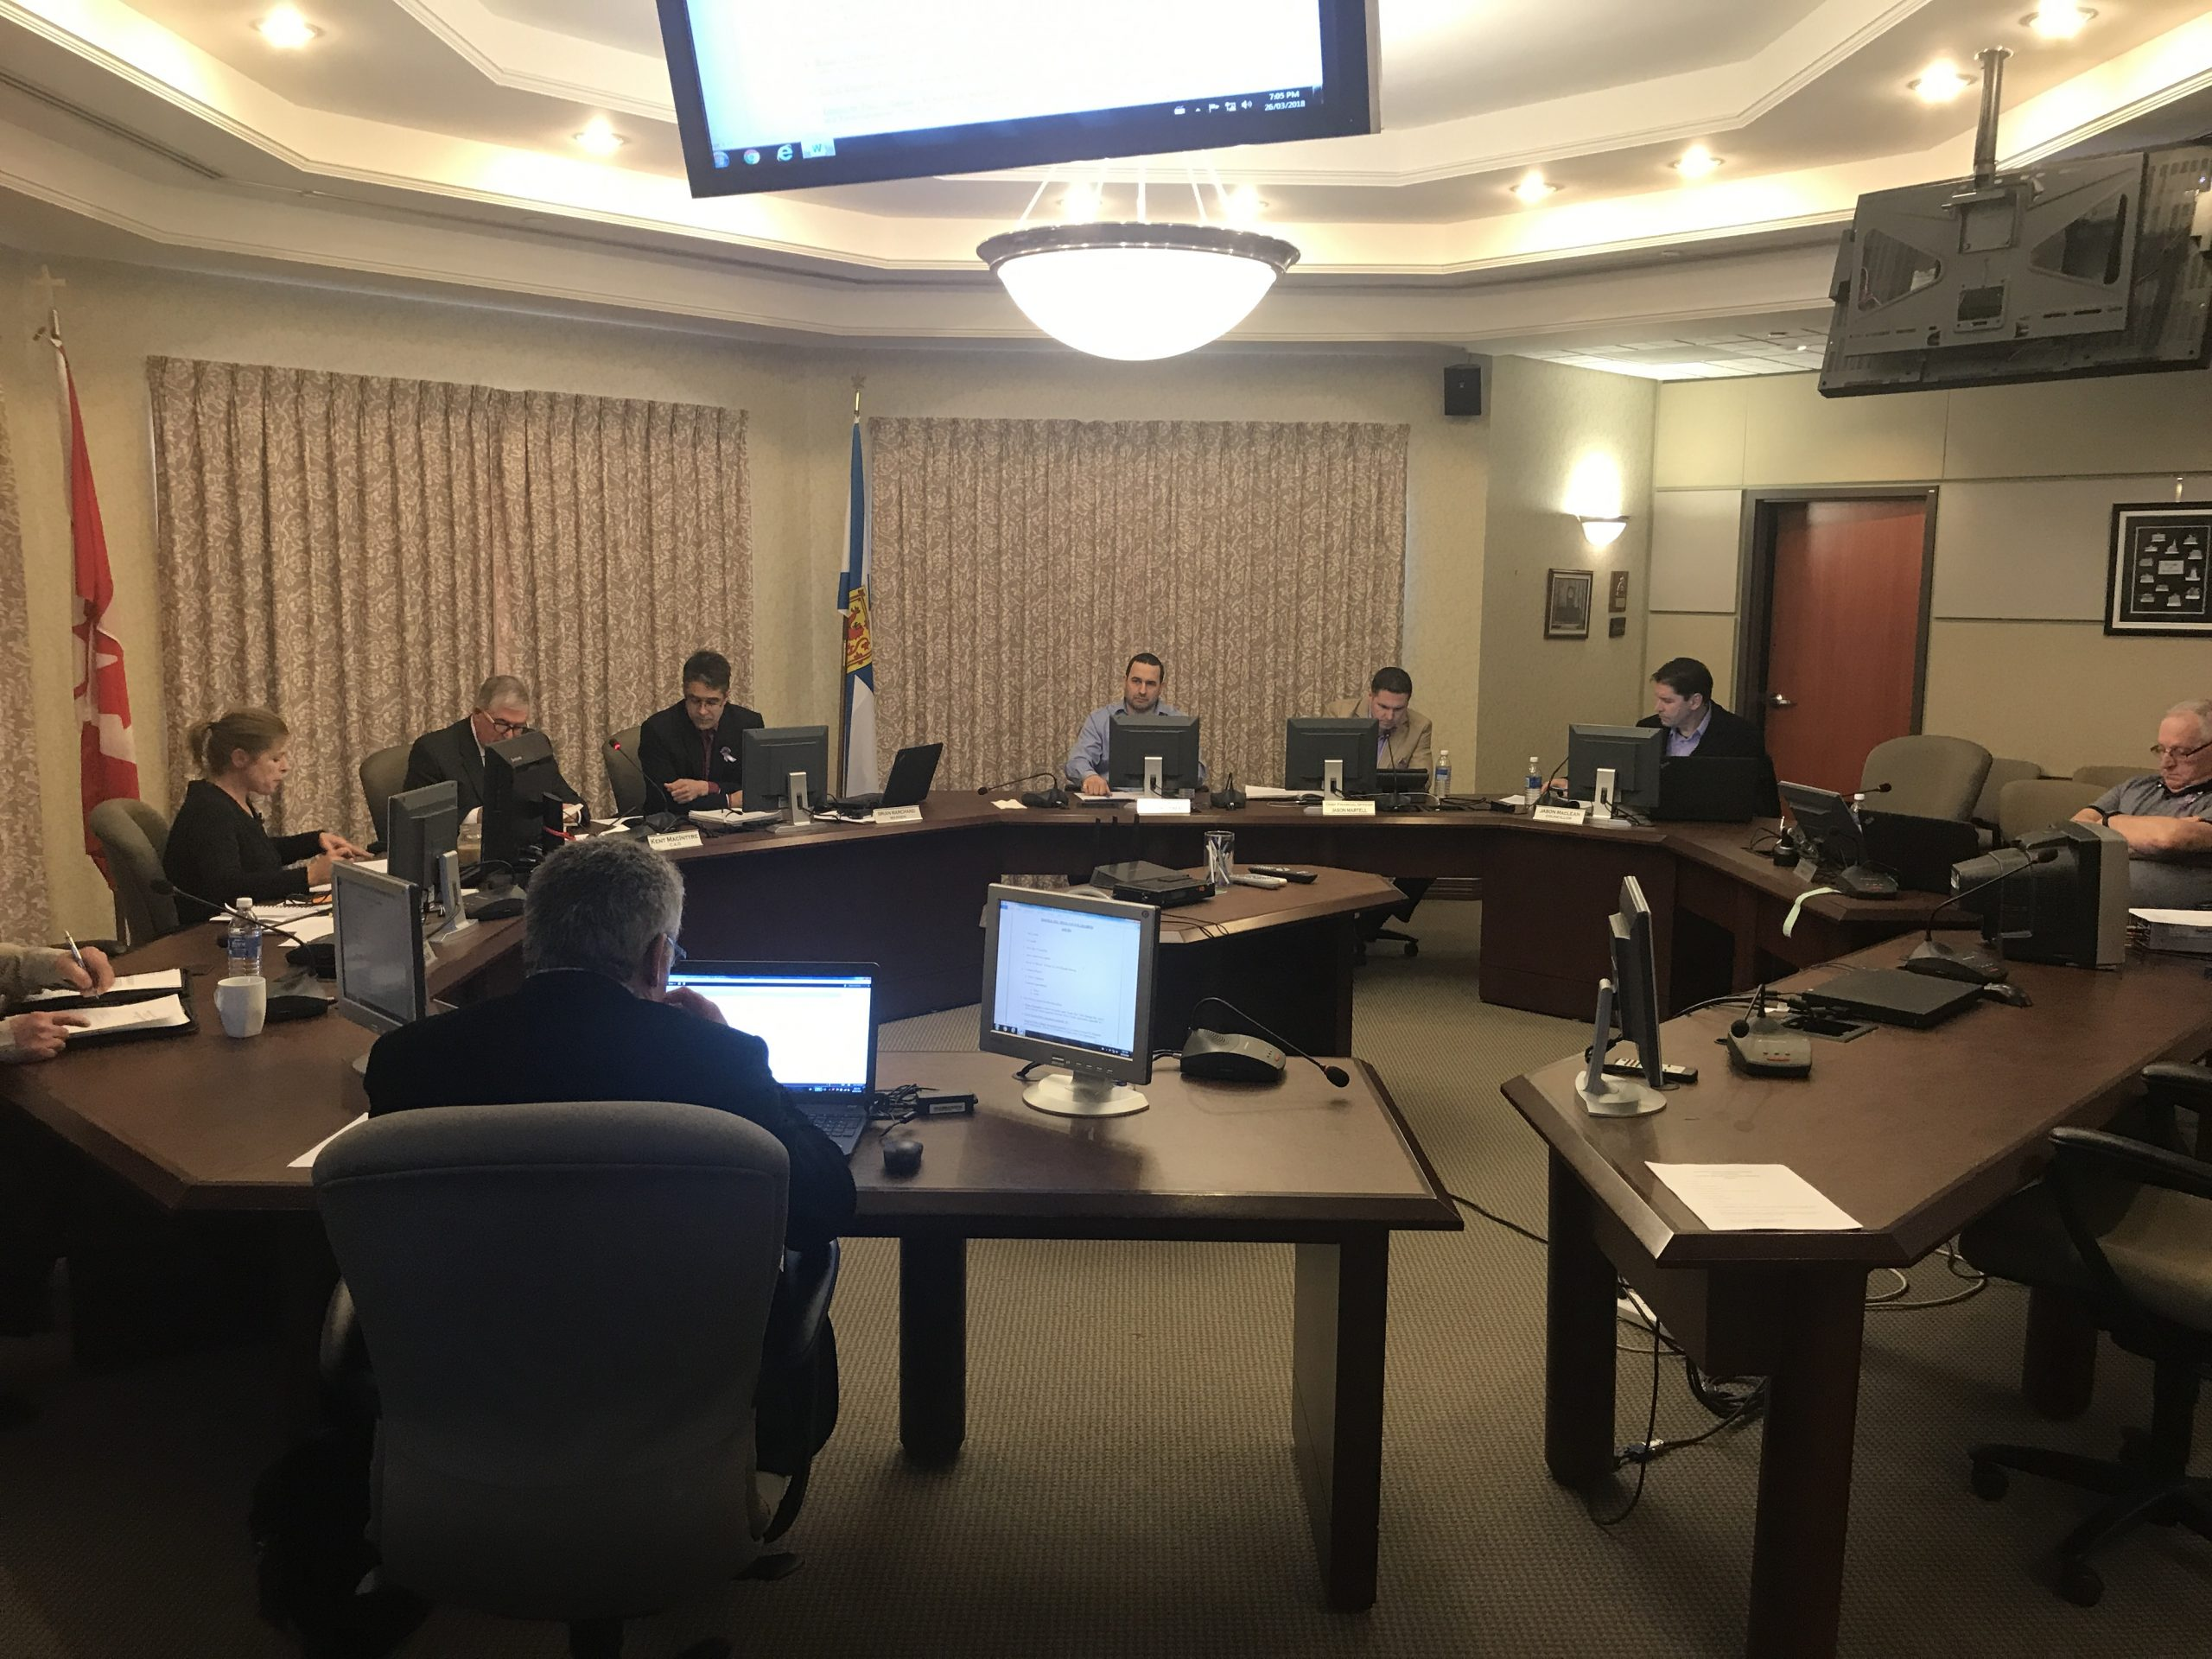 Richmond Co. councillors say there's an unanswered question about rural internet funding from provincial officials